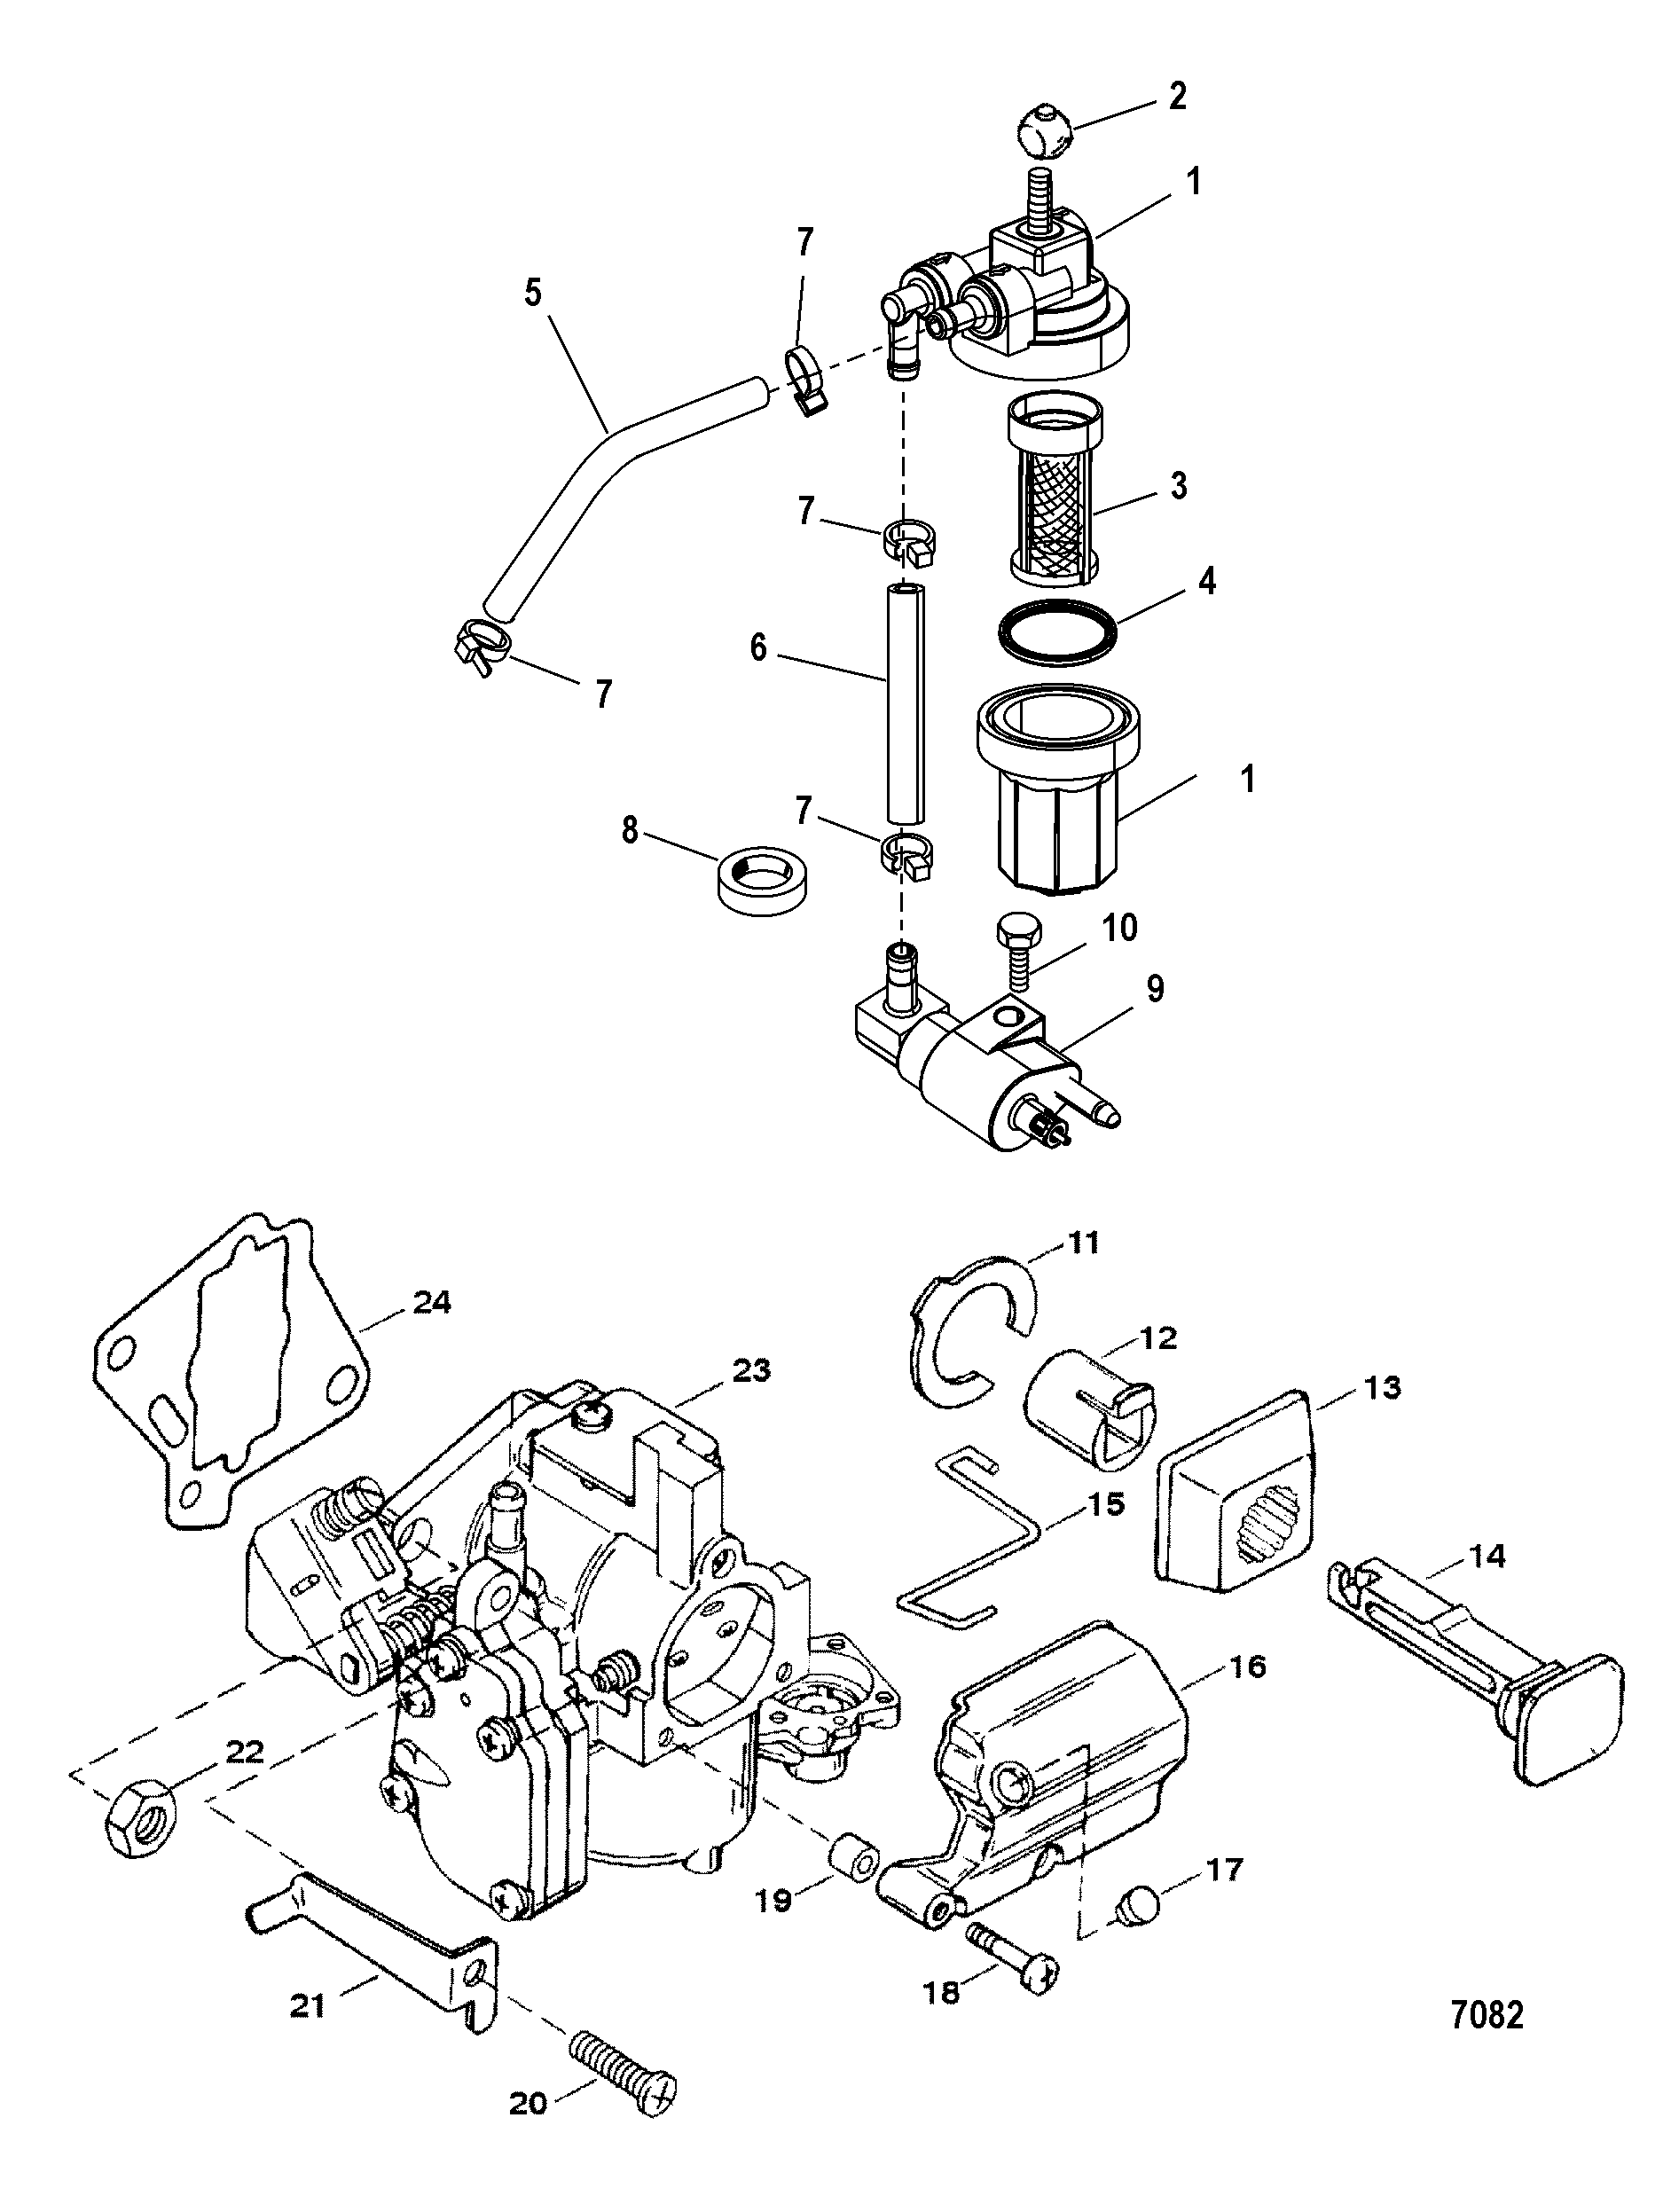 Polaris Outlaw 90 Wiring Diagram